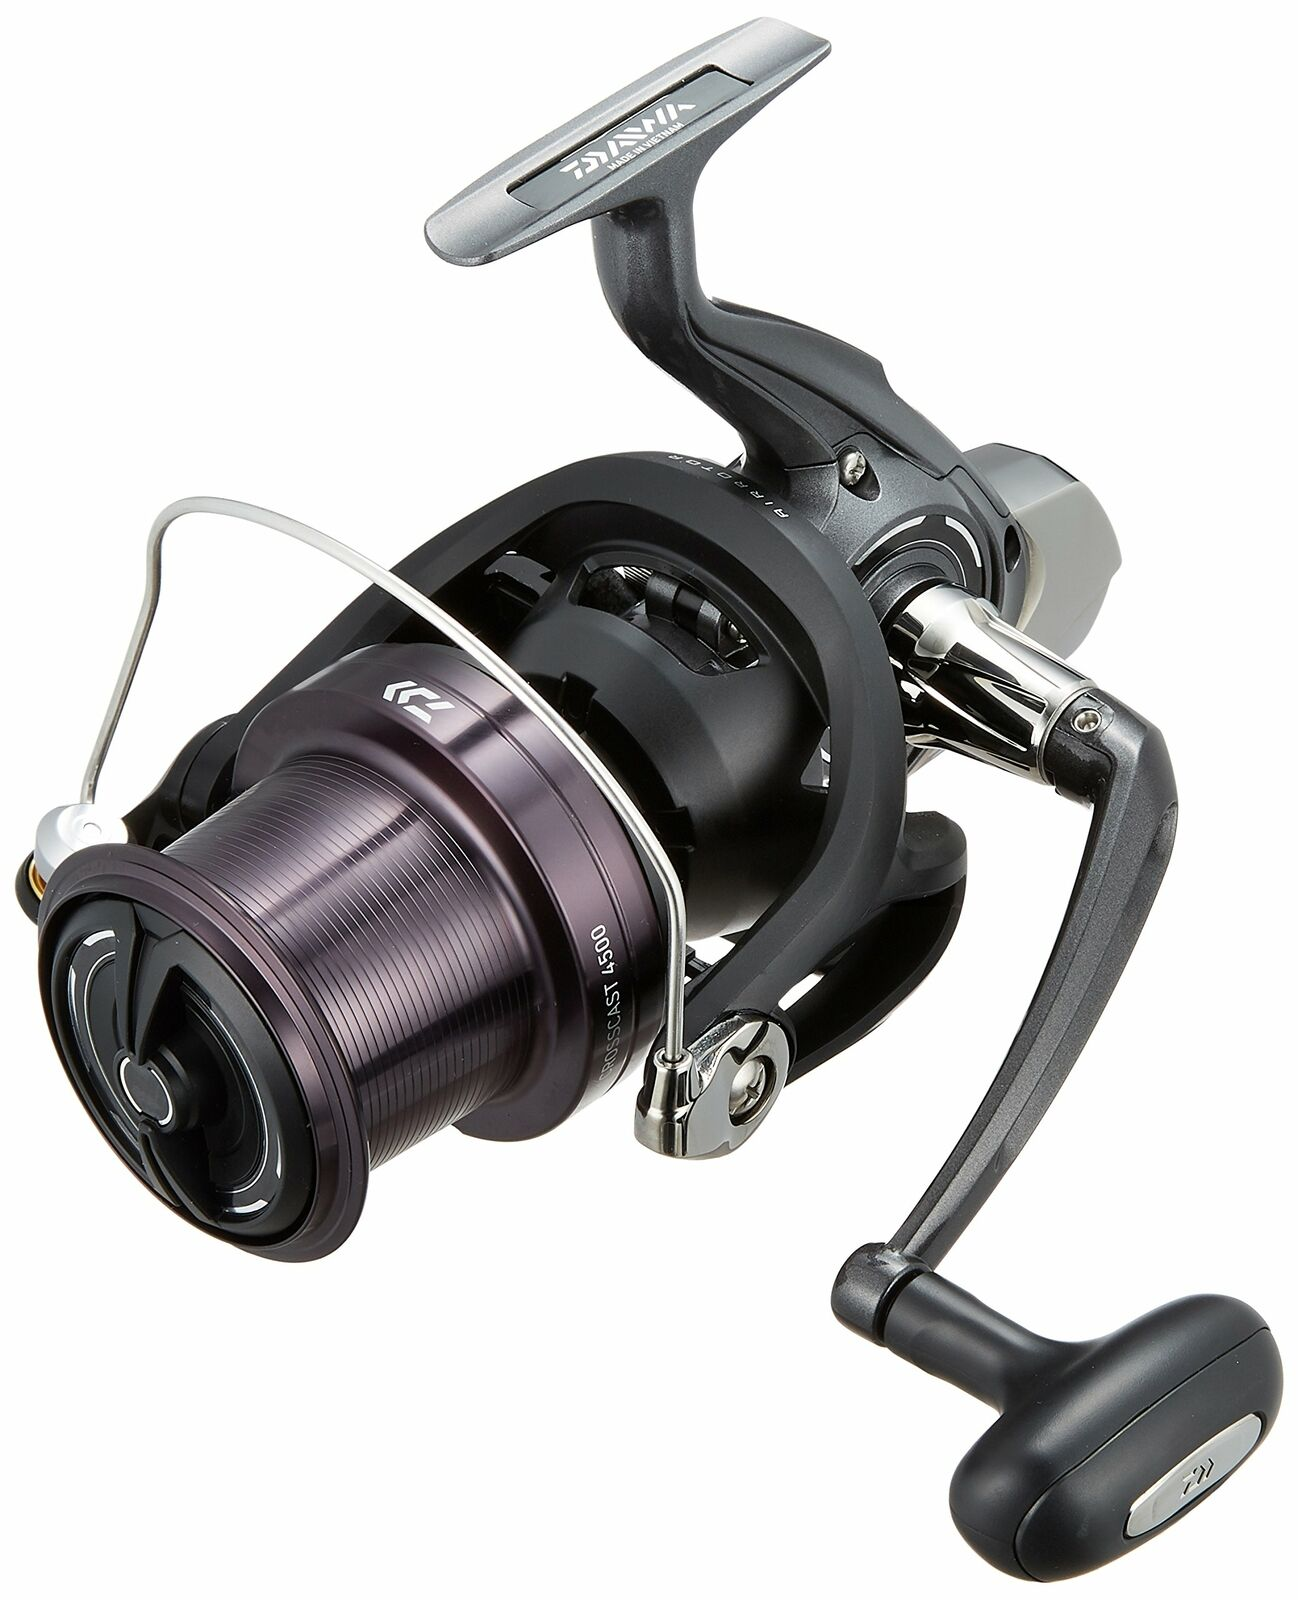 Daiwa Spinning Reel 17 Cross Cast 4500 For fishing From Japan